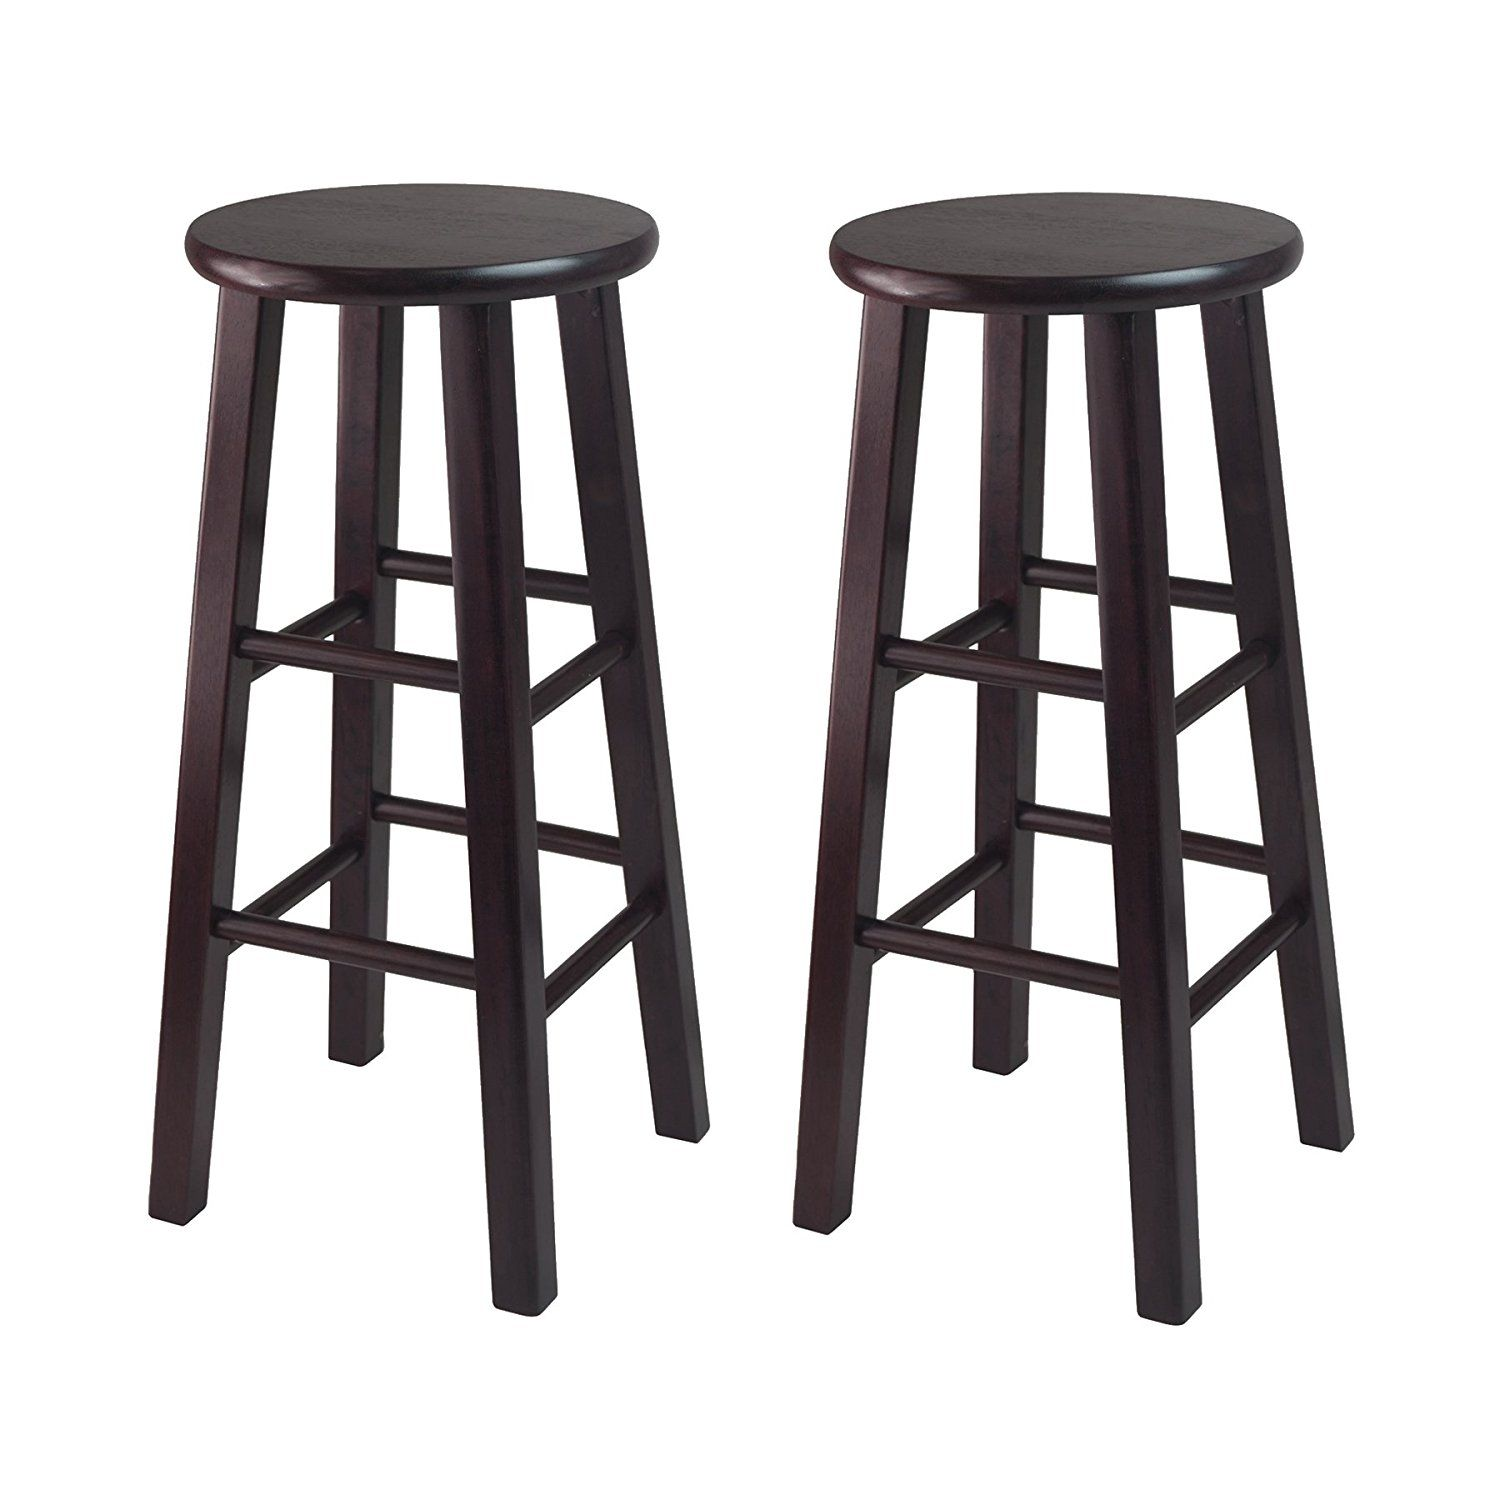 Amazoncom Winsome Bar Stool With Square Legs, 29 Inch, Espresso